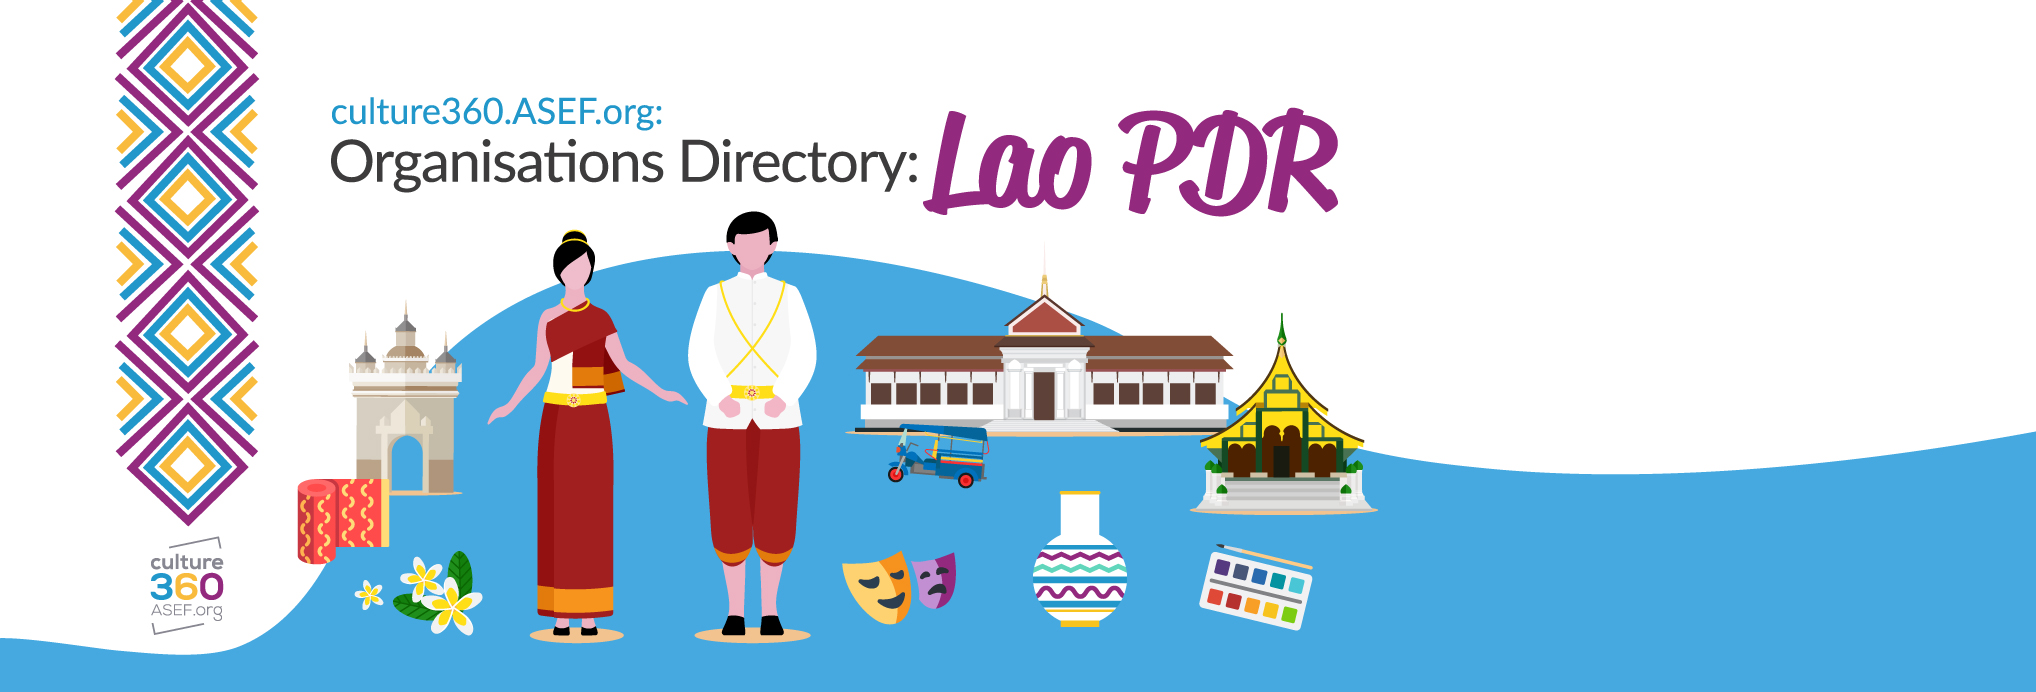 culture360 Lao PDR Organisation Directory